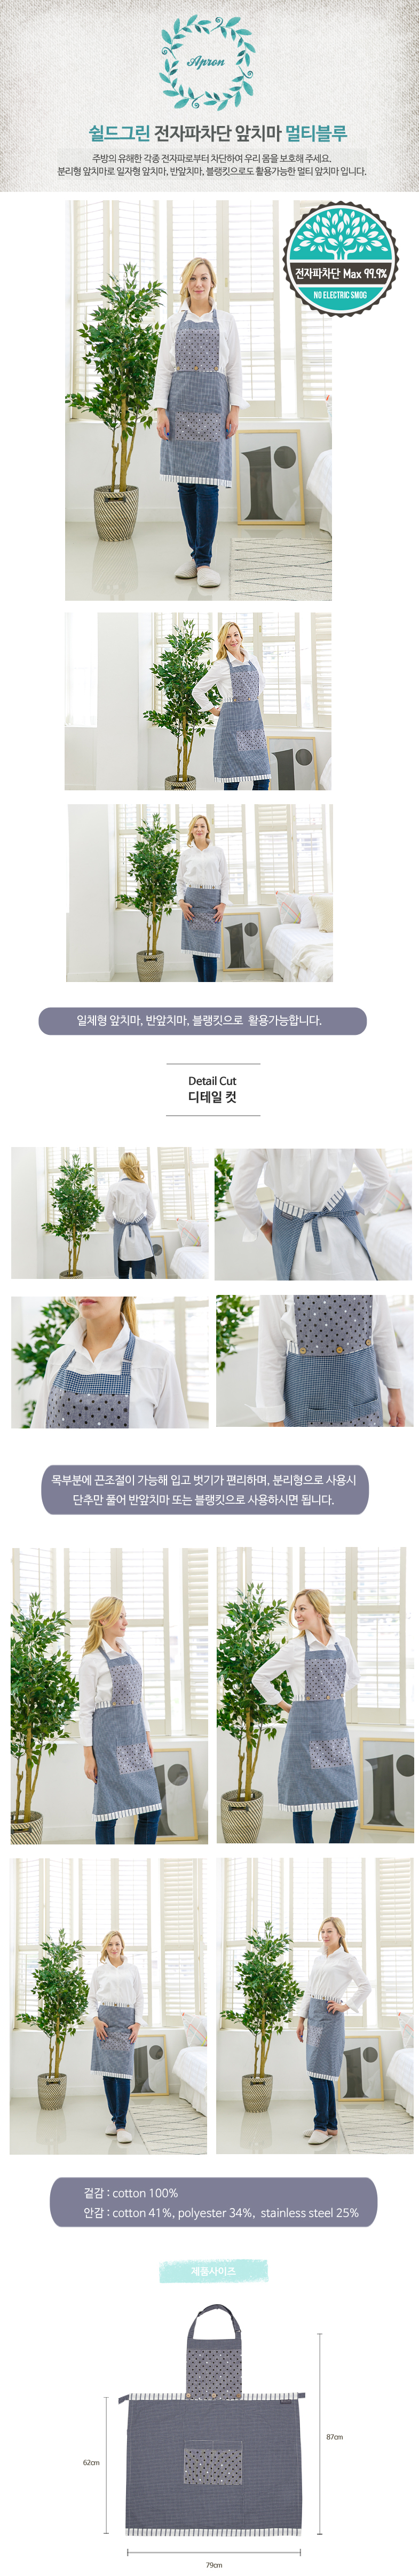 [ ShieldGreen ] Shieldgreen Anti Radiation/ EMF Shielding Multi Apron (Blue/Choco)